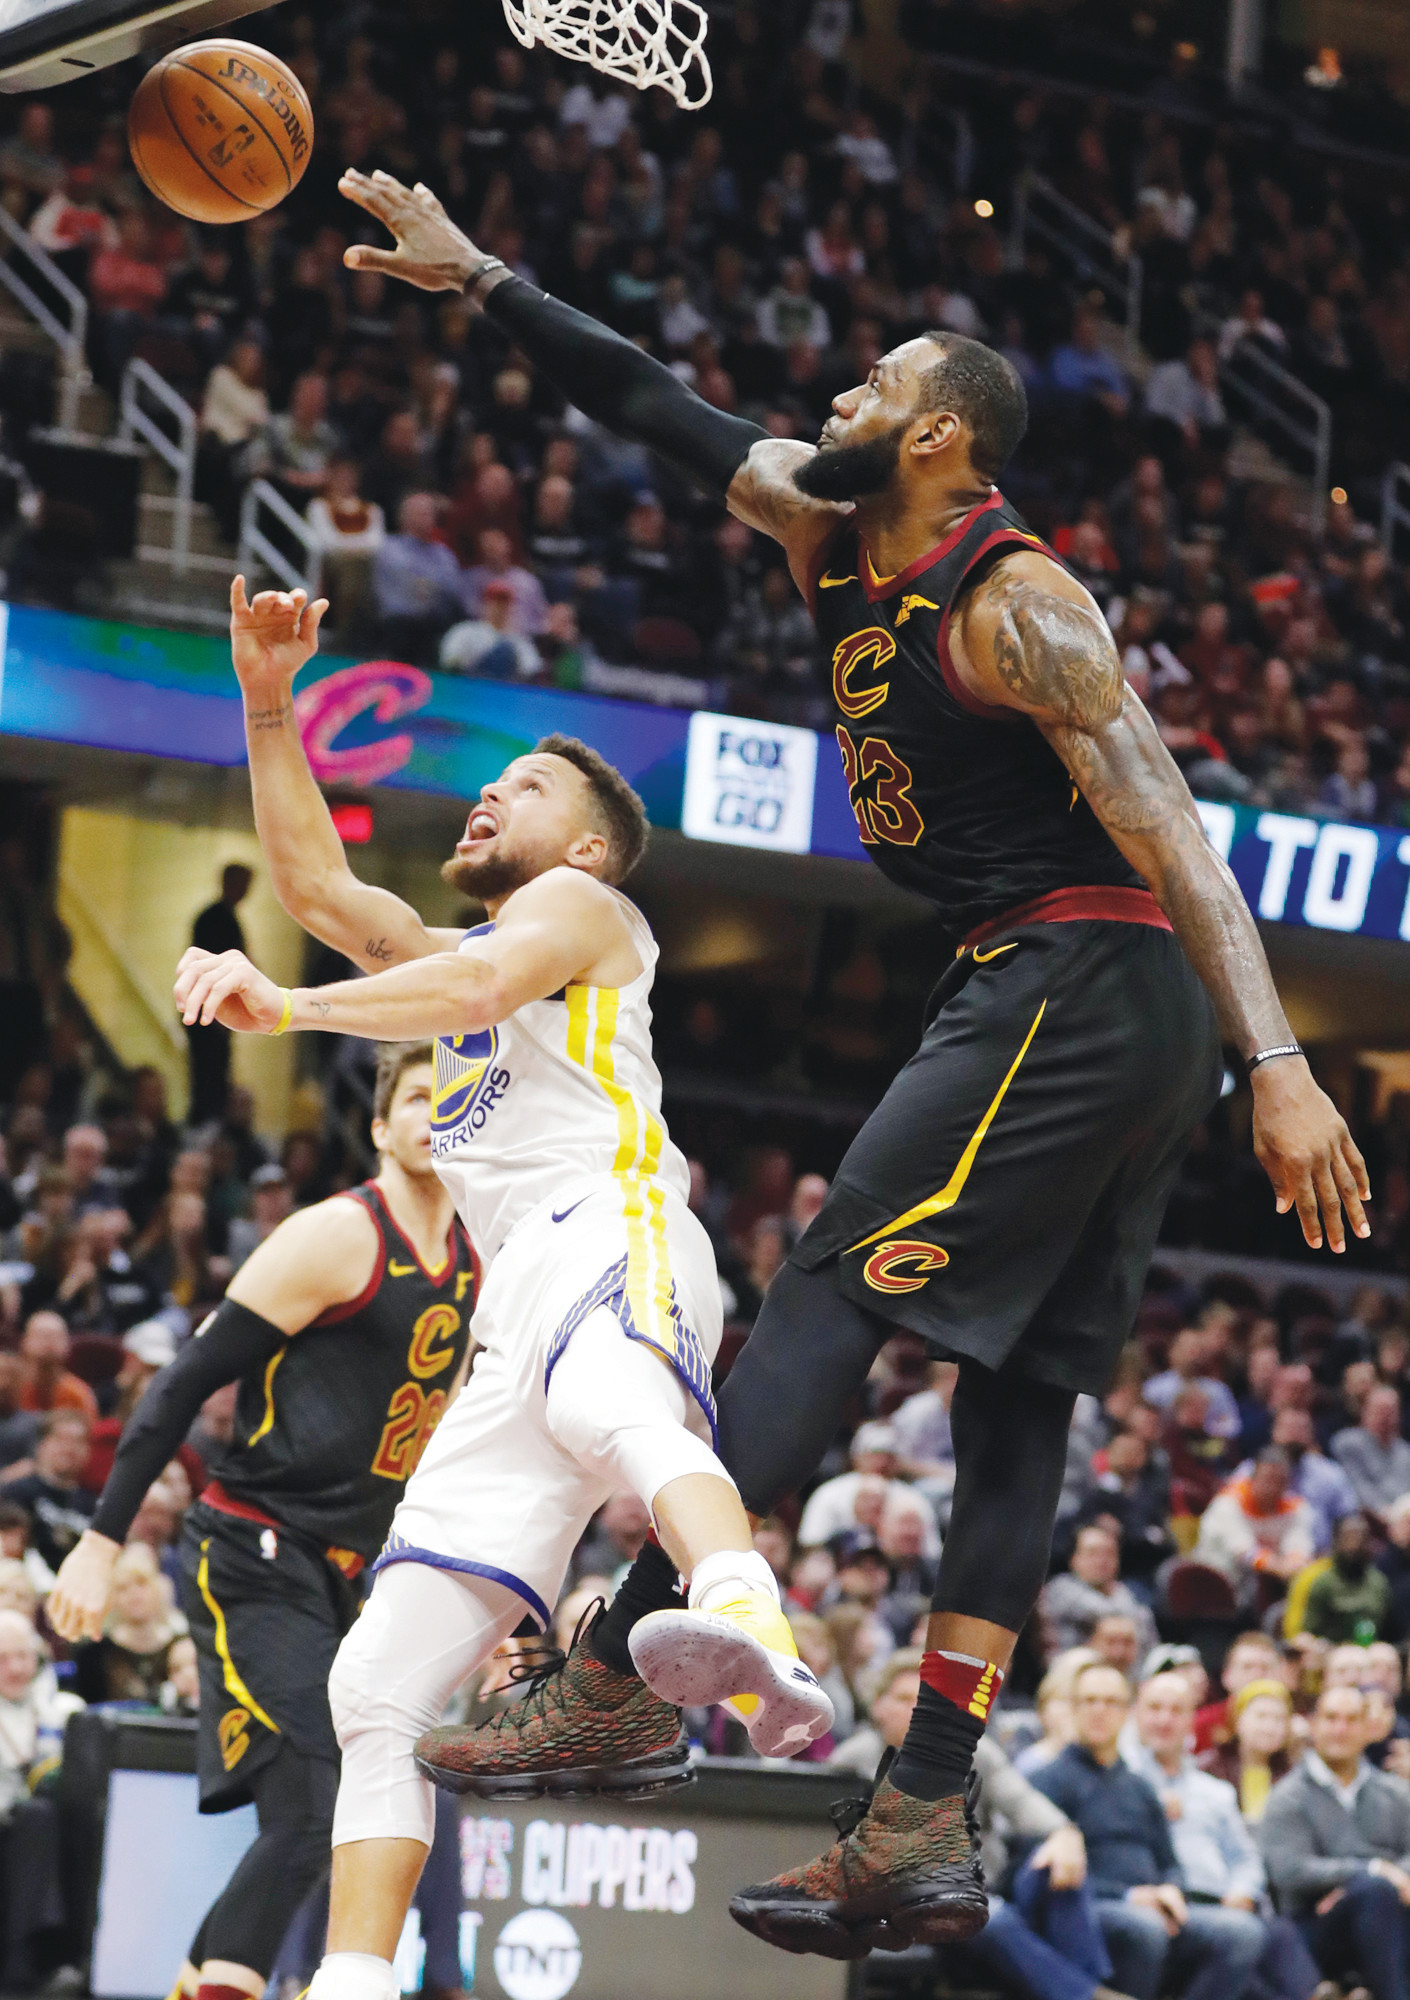 LeBron, Curry captains, to draft NBA